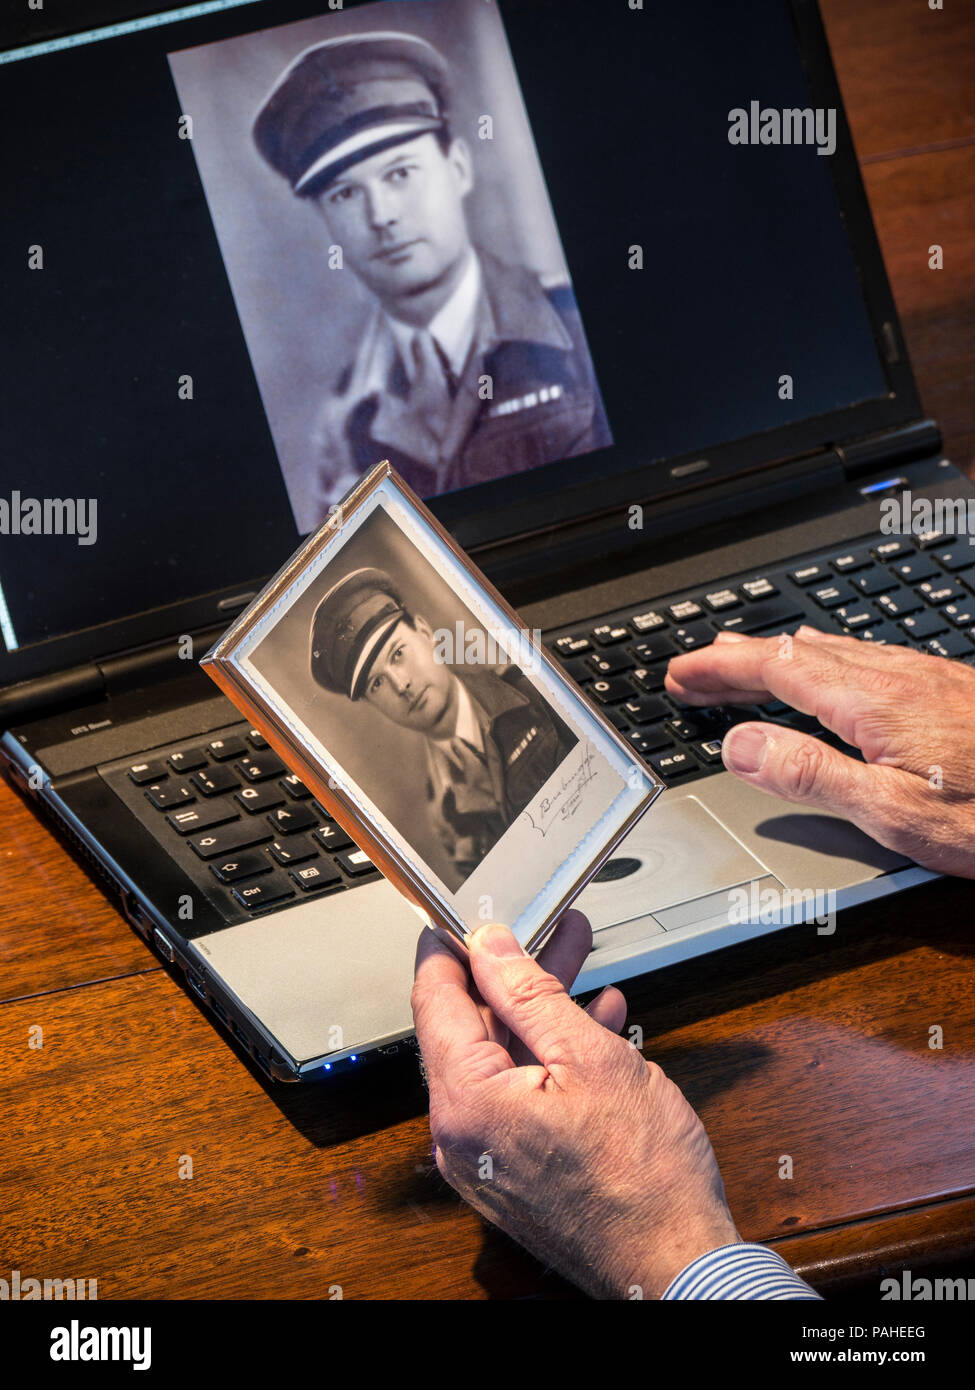 Hand holding old 1940's sepia photograph of a uniformed British Army Officer with same scanned image called up on laptop computer screen behind - Stock Image